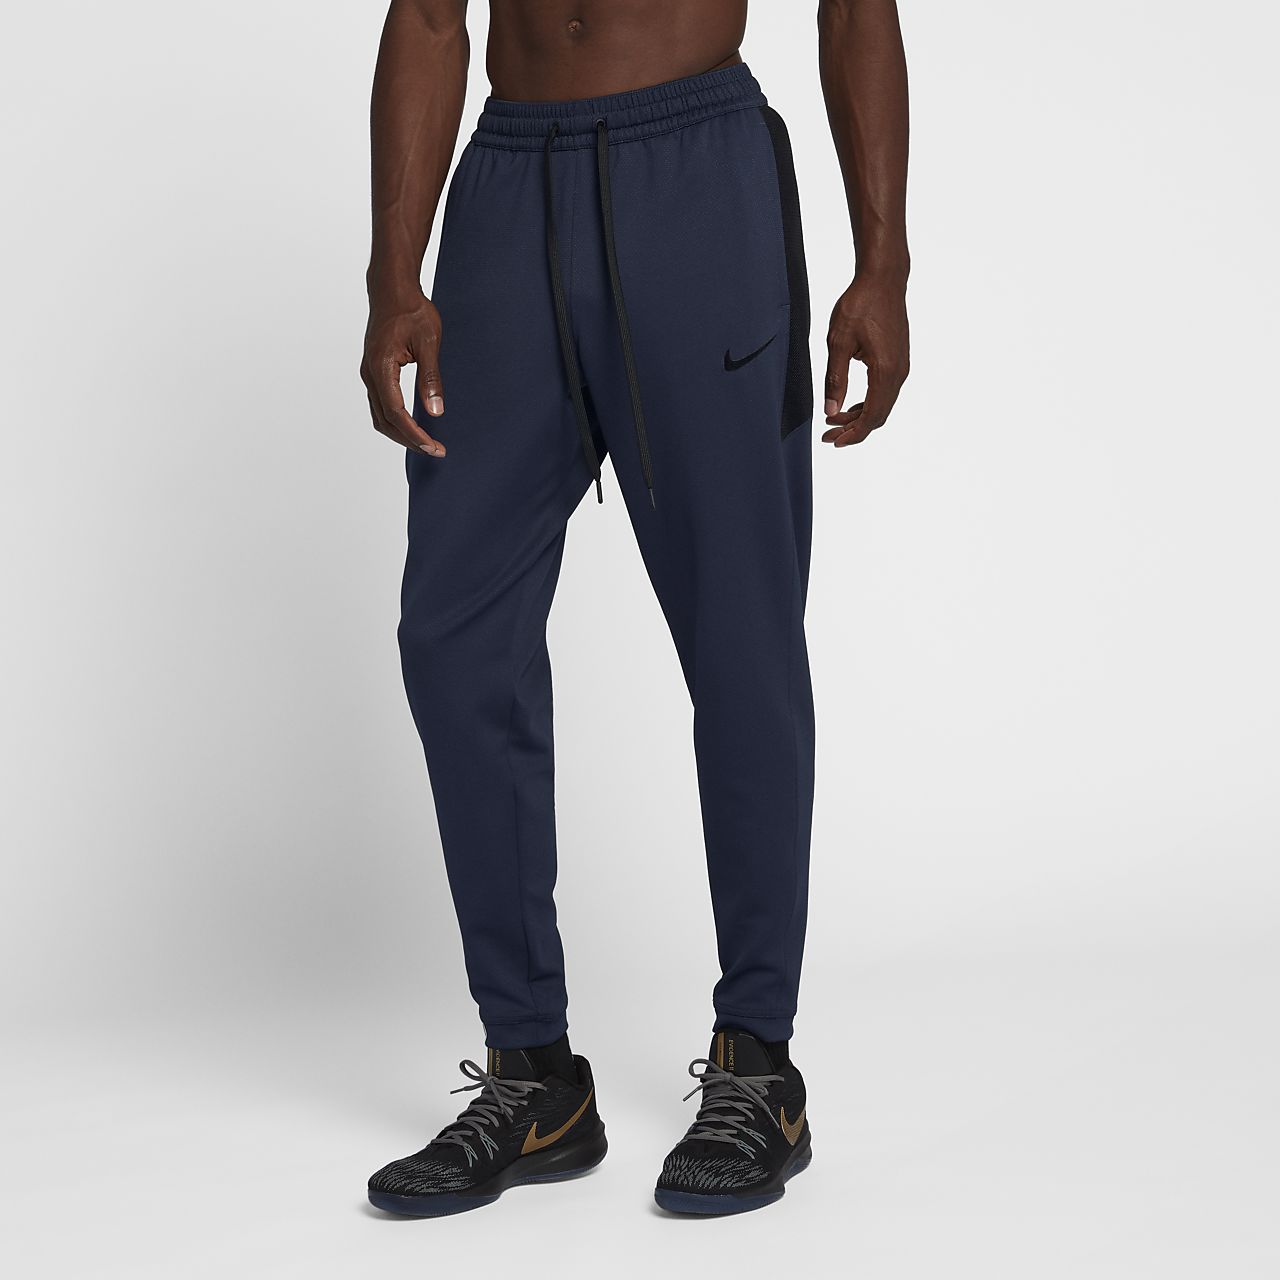 9288c46d269a Nike Therma Flex Showtime Men s Basketball Trousers. Nike.com MA